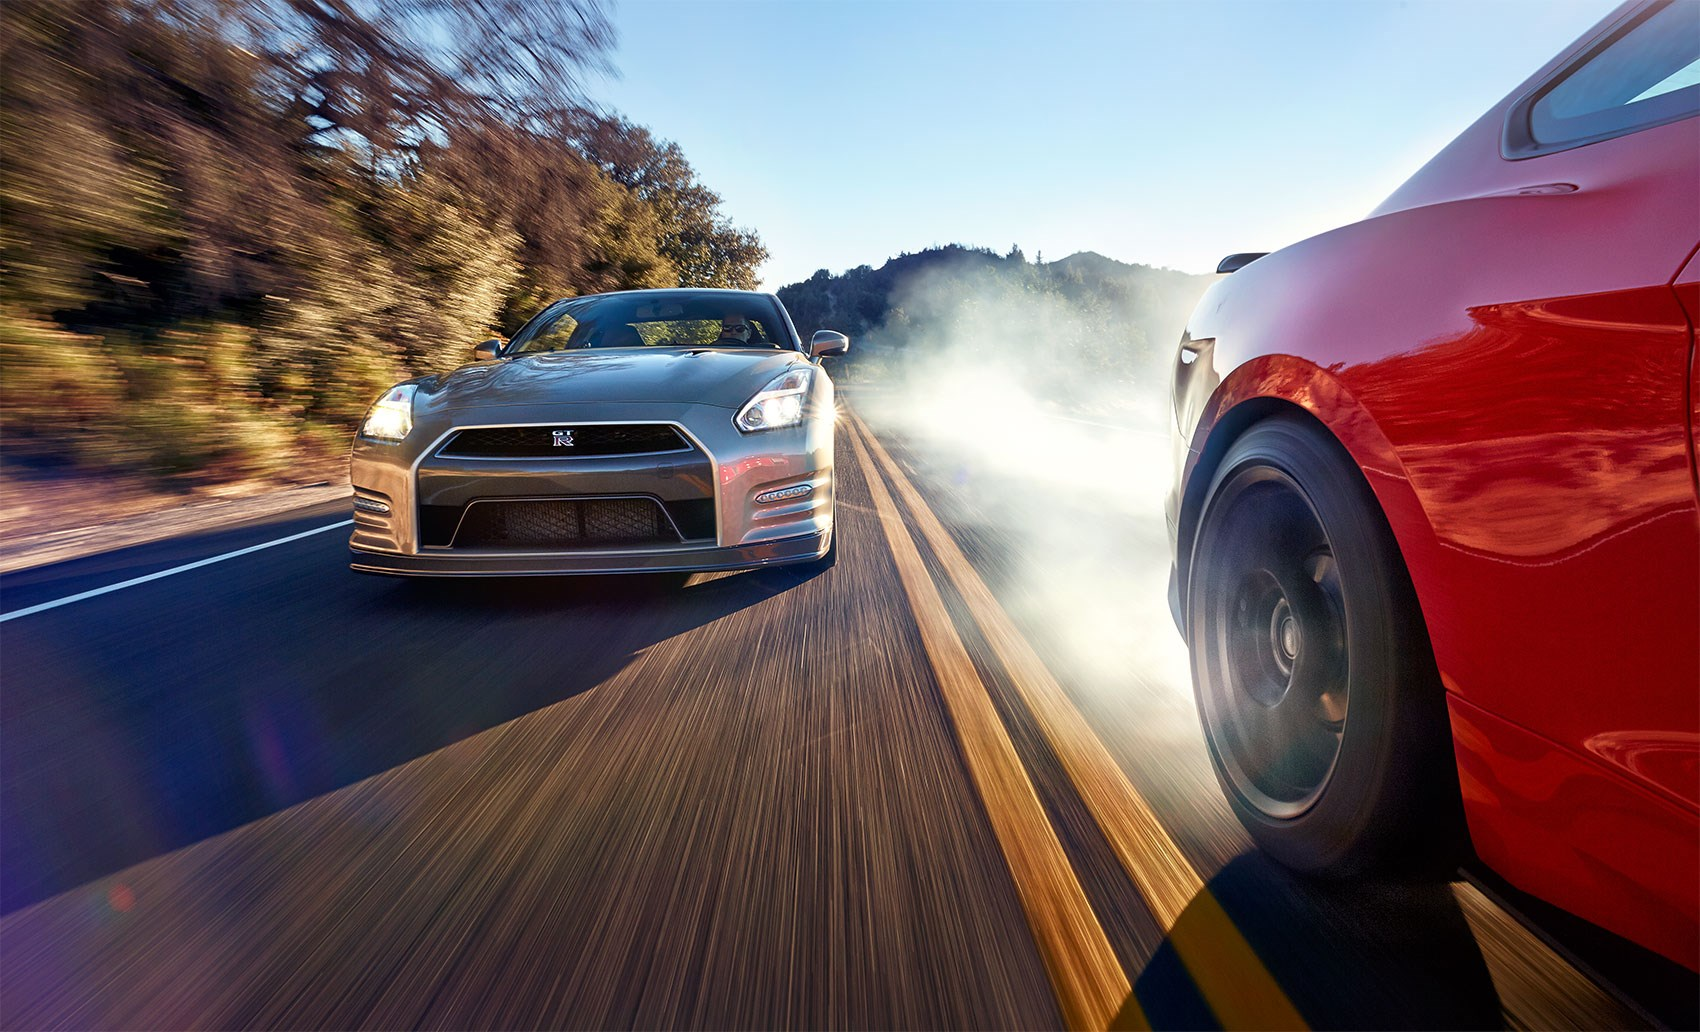 Godzilla vs voodoo child nissan gt r takes on ford mustang shelby gt350 car magazine